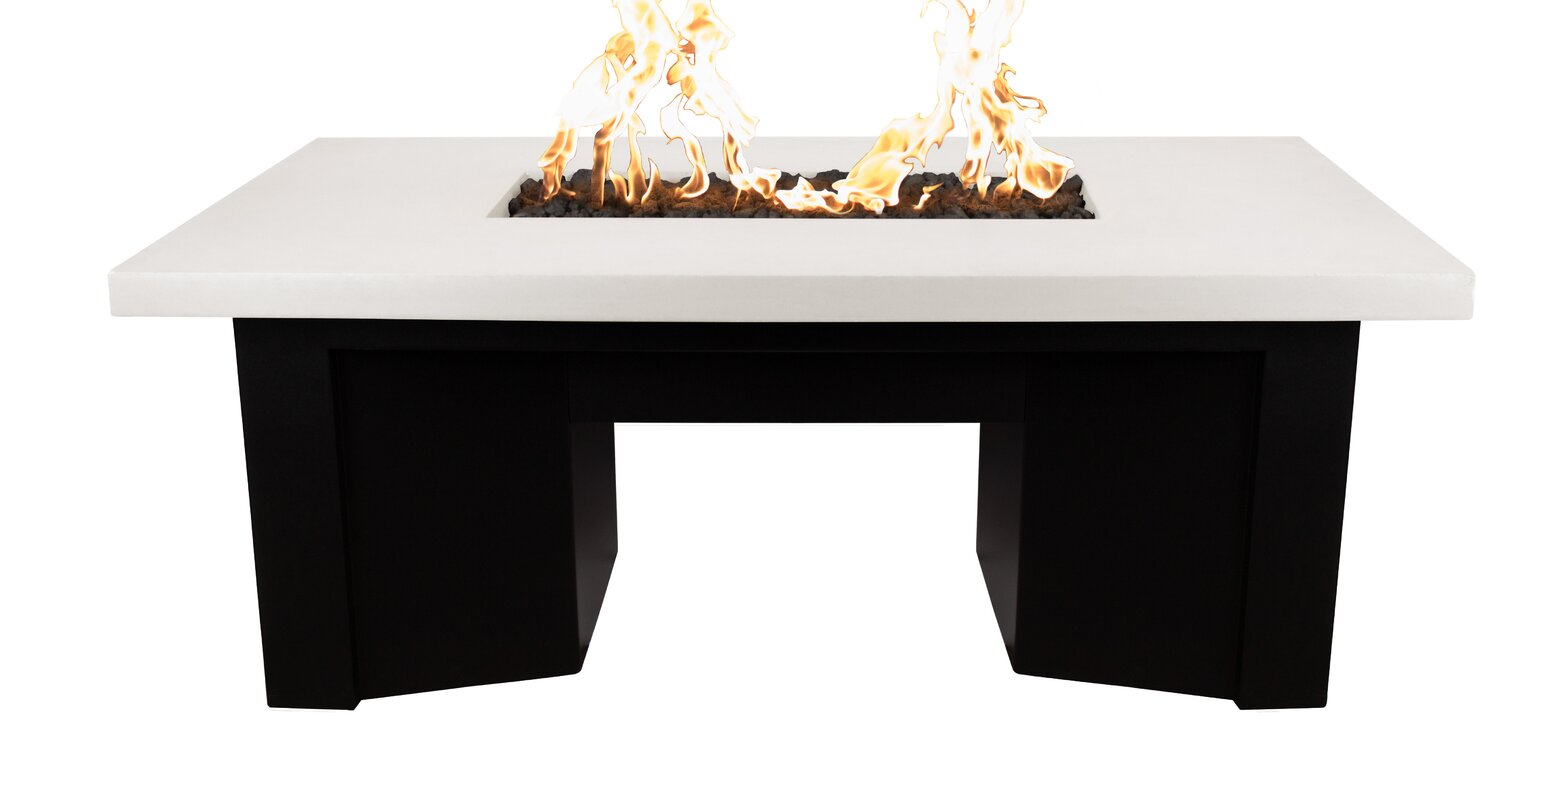 The outdoor plus saleen concrete propane fire pit table reviews saleen concrete propane fire pit table geotapseo Images